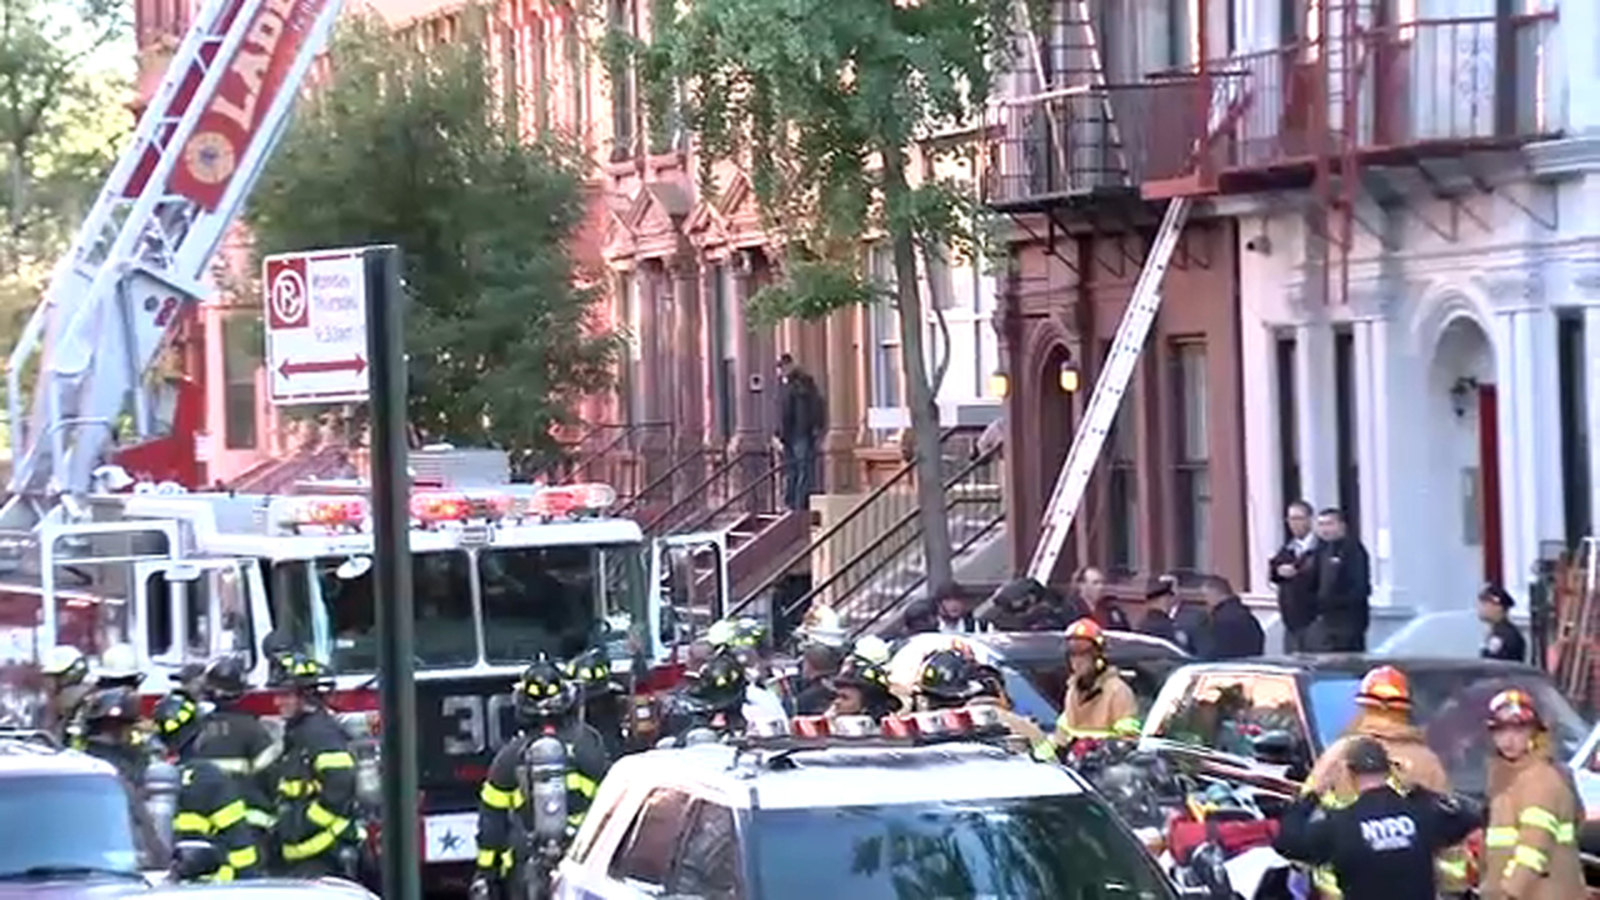 3 dead after shooting and fire at building in Harlem